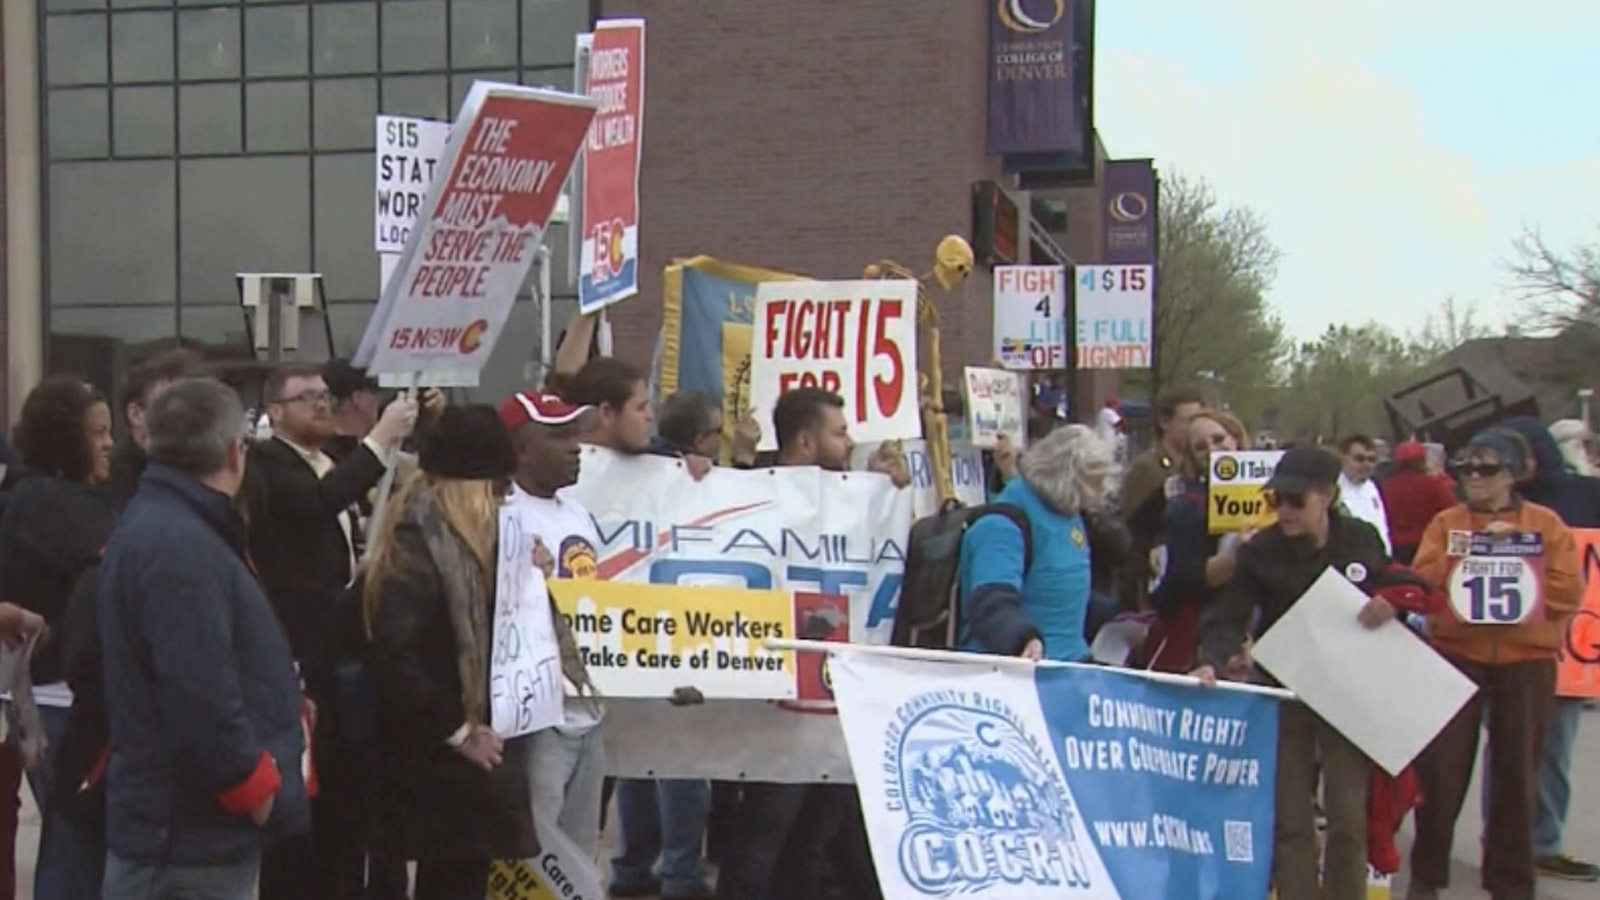 Fight for $15 rally in Denver on Wednesday (credit: CBS)